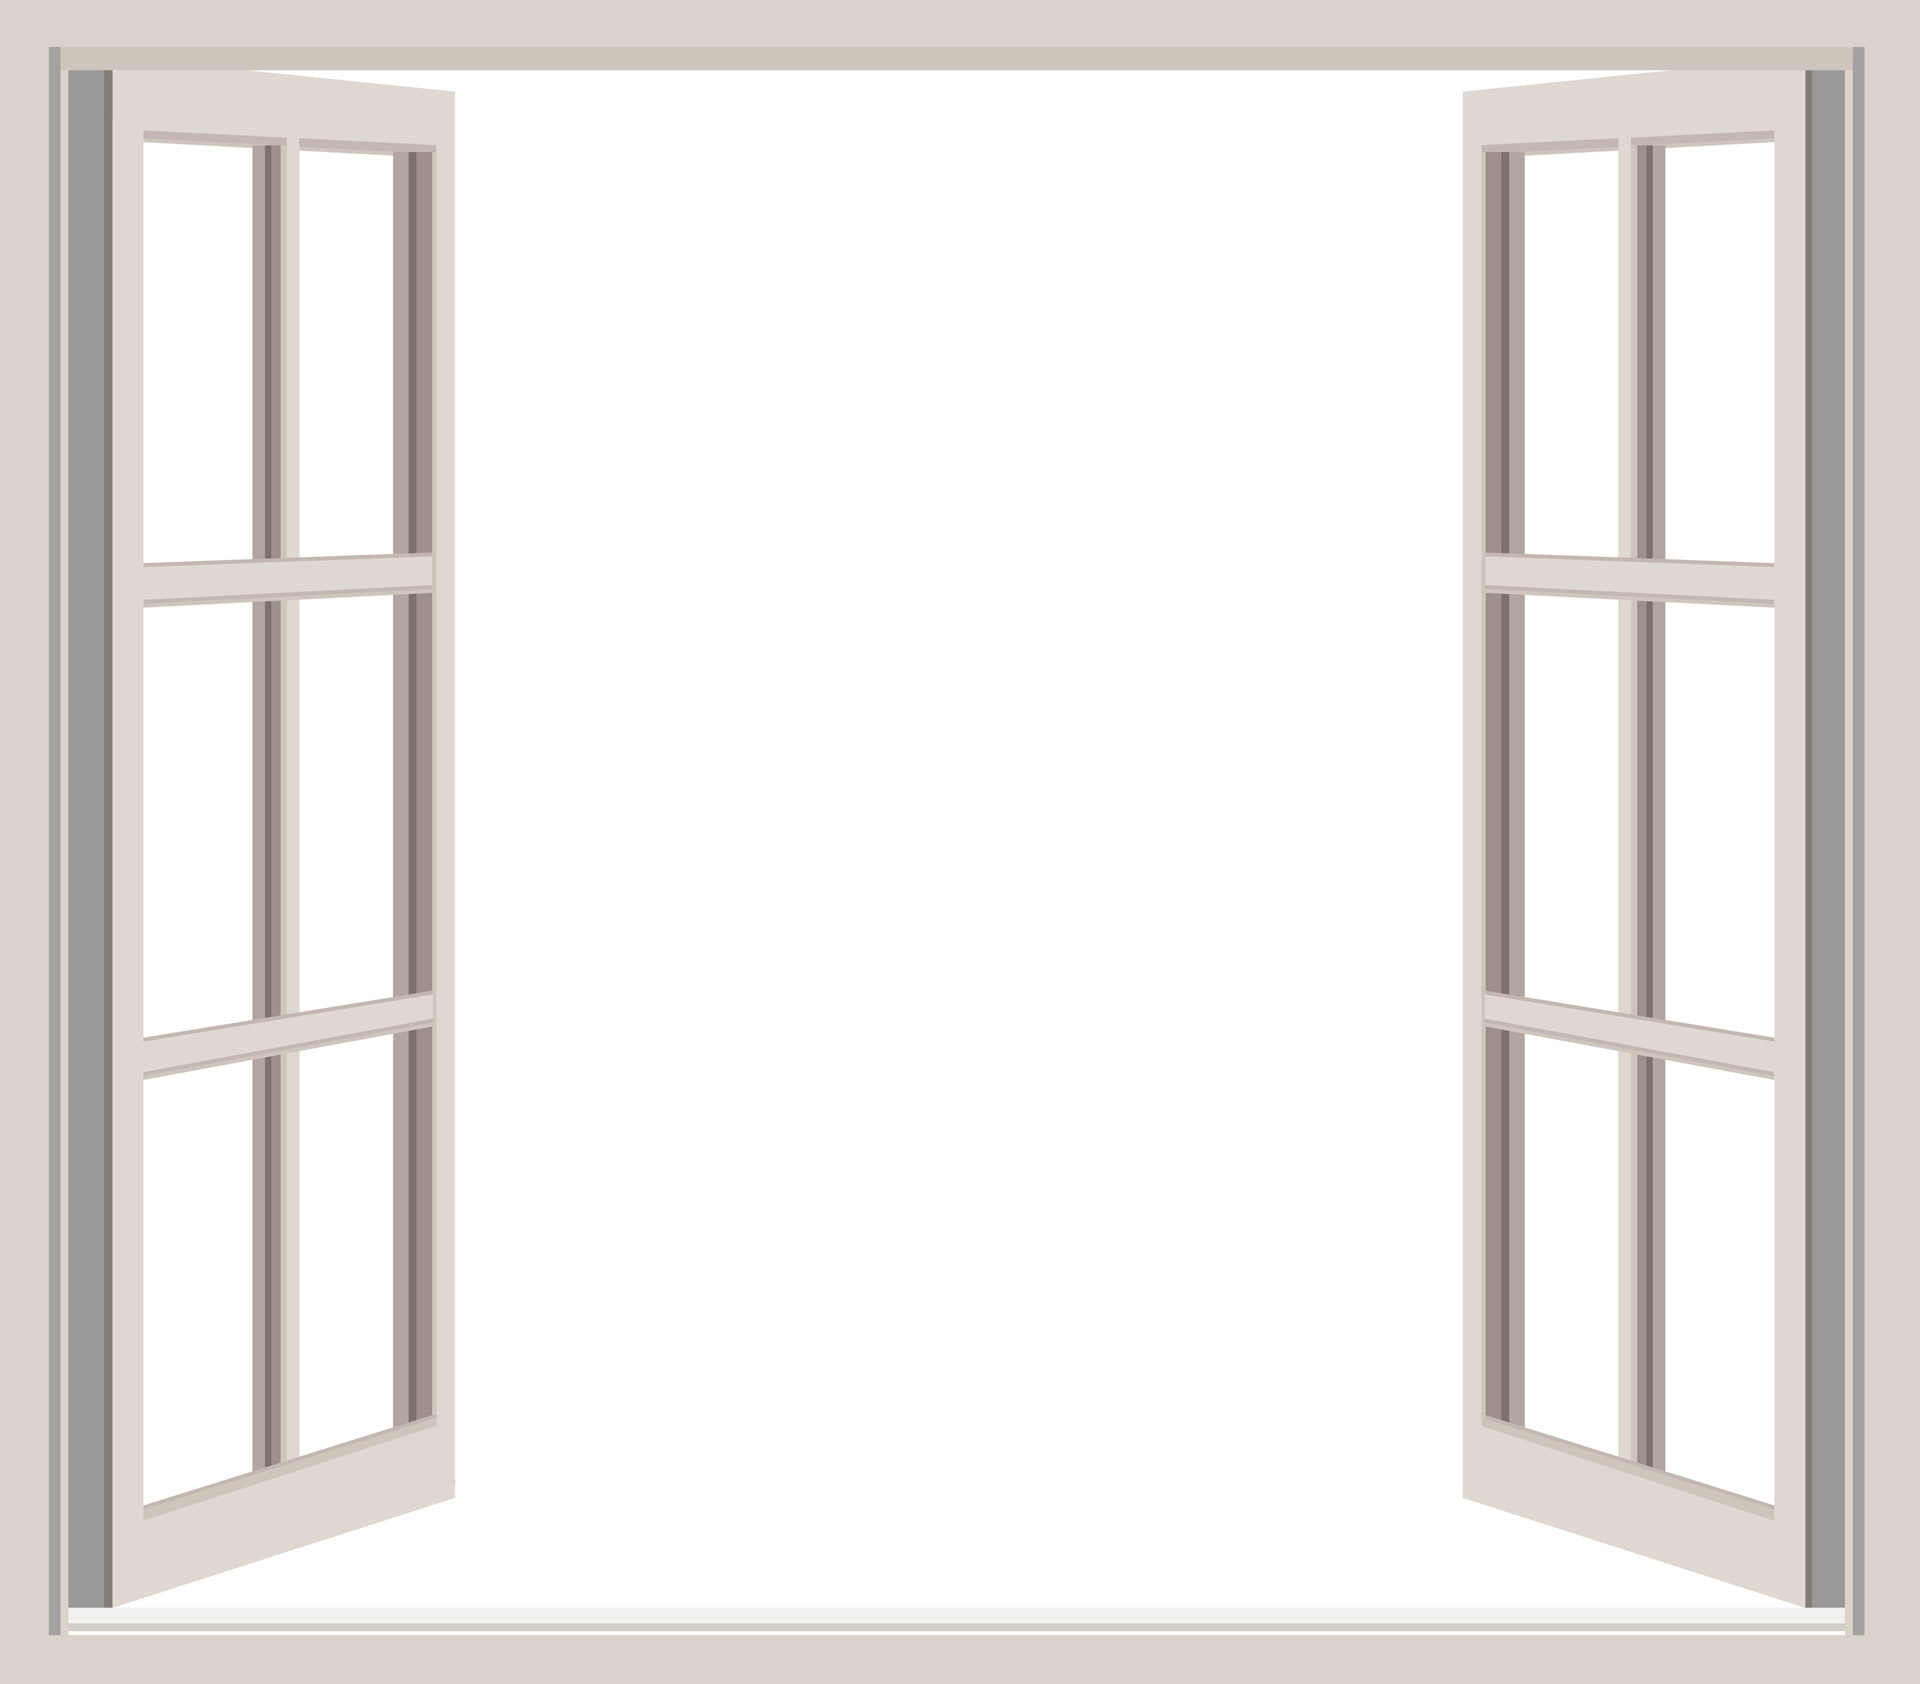 Window clipart window frame Clipart Pictures Window Free Open